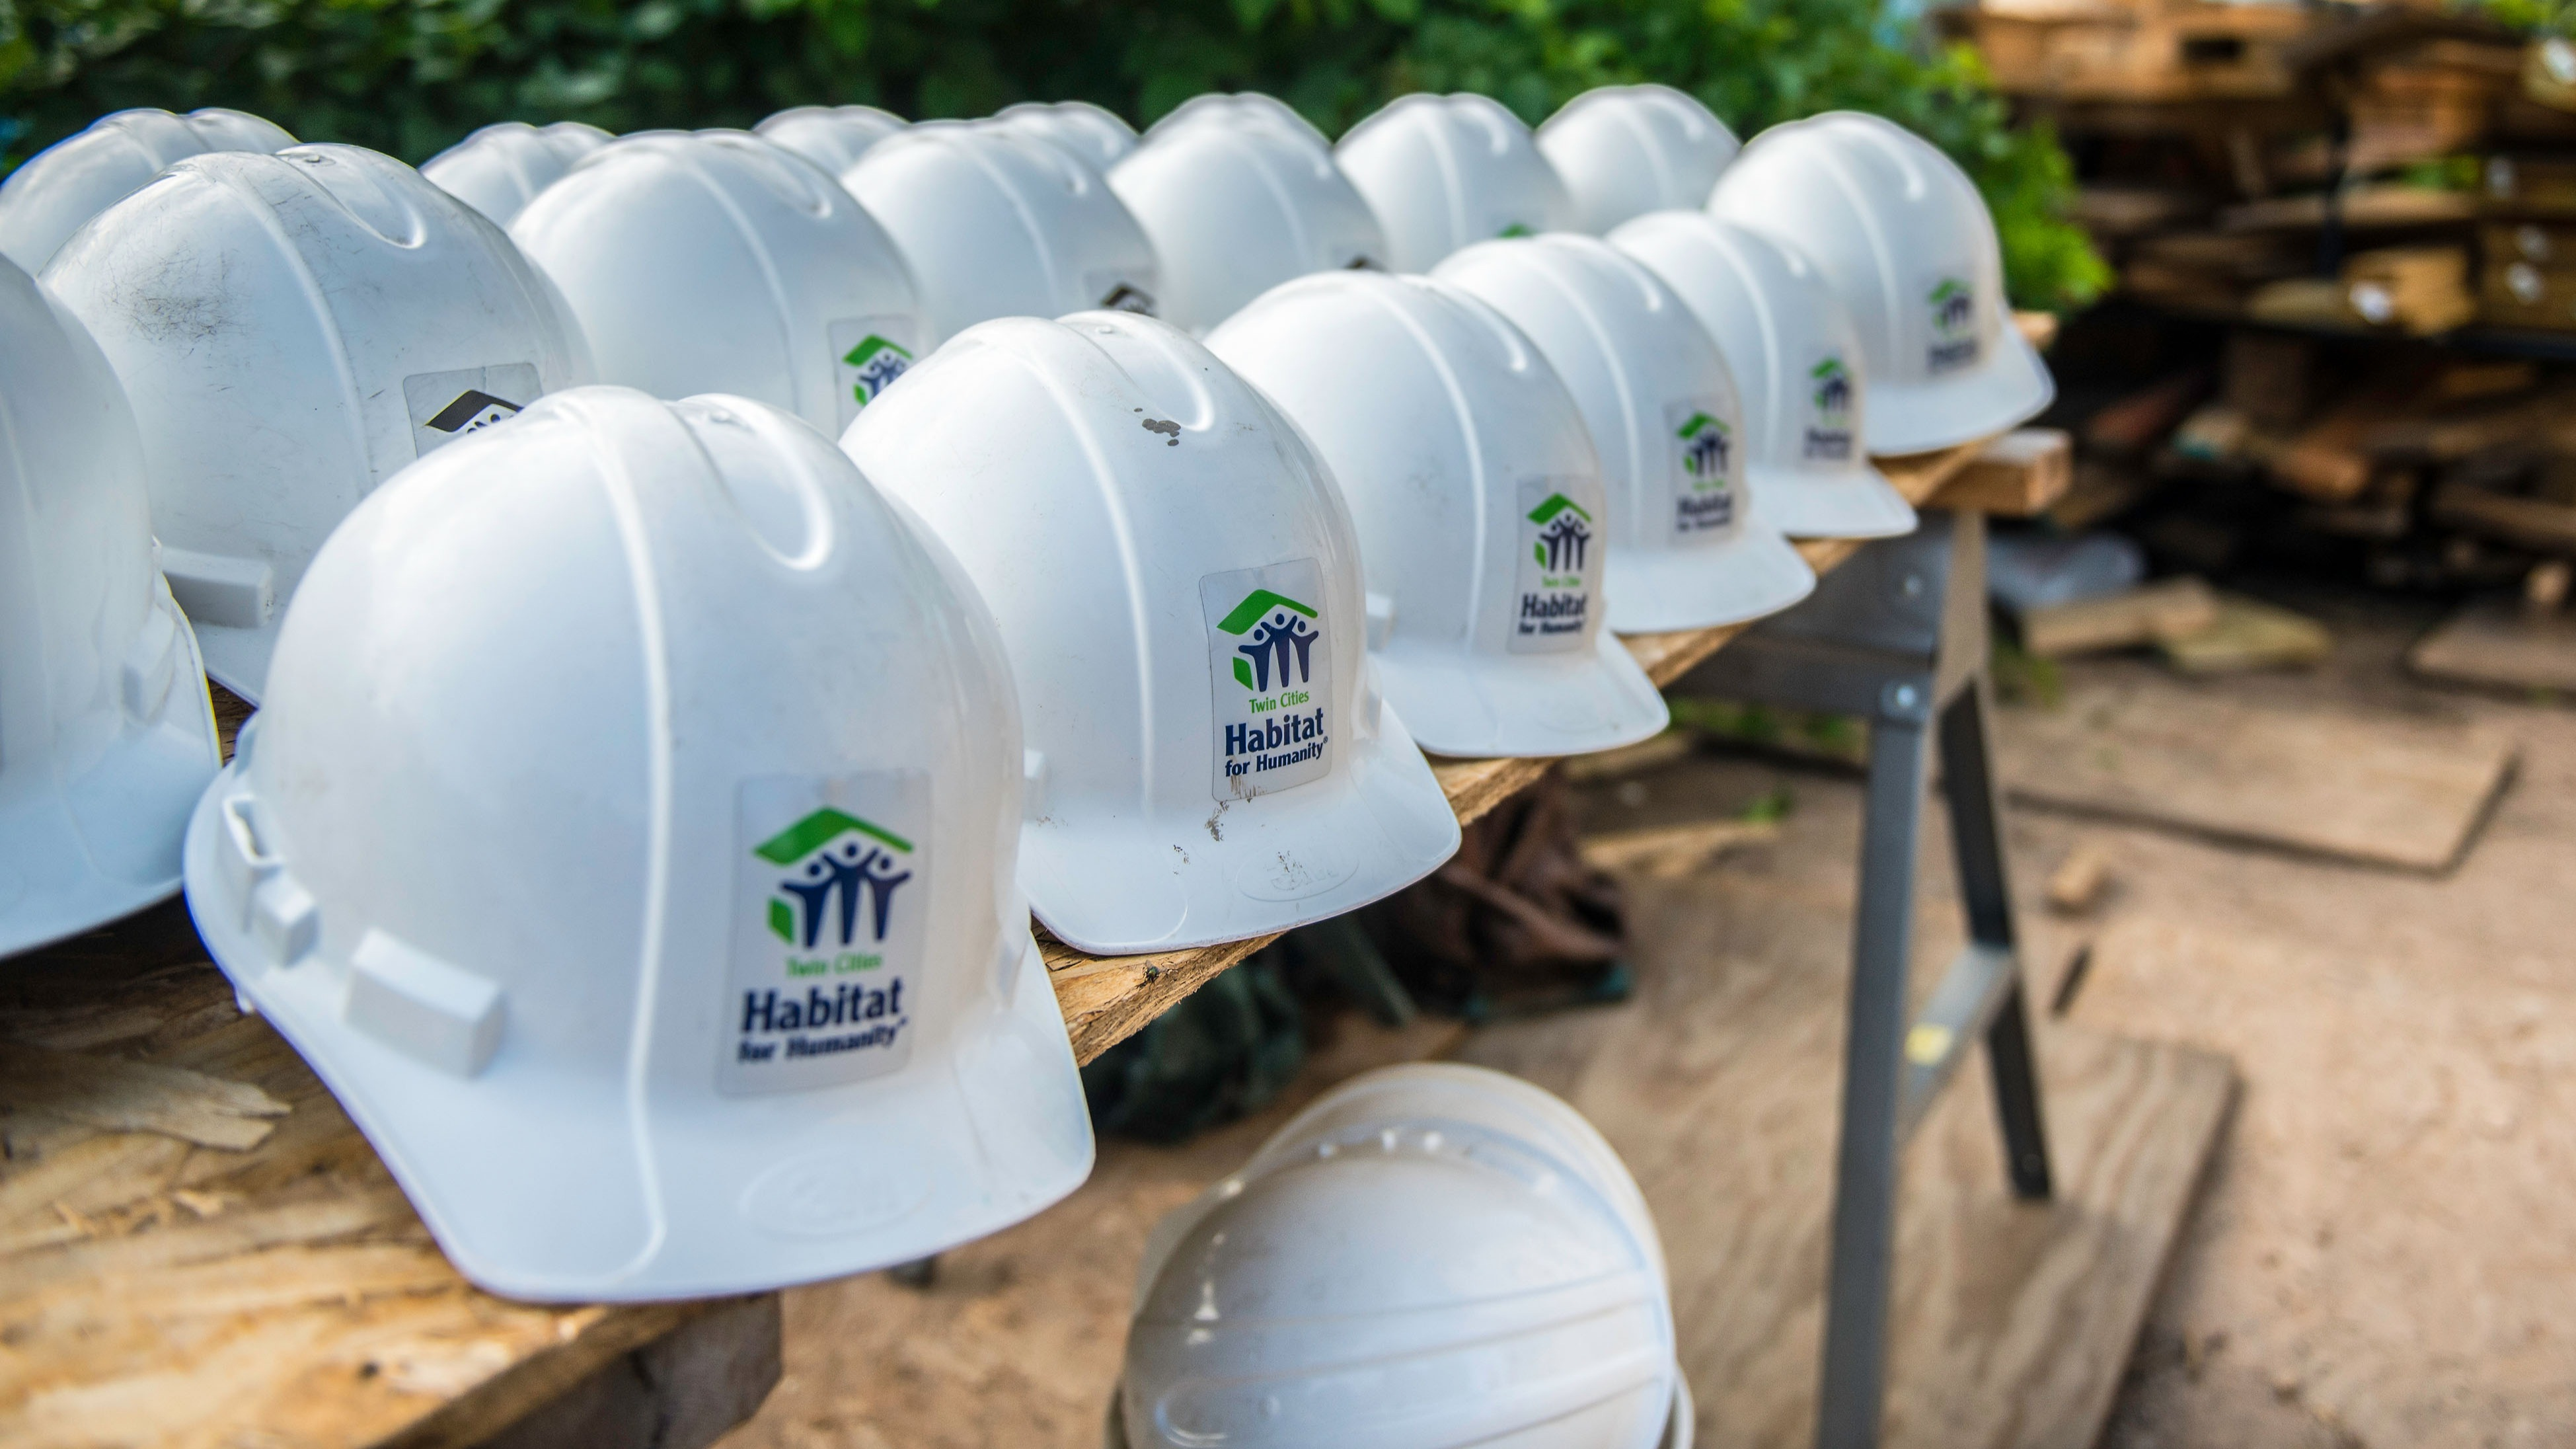 Twin Cities Habitat for Humanity hard hats